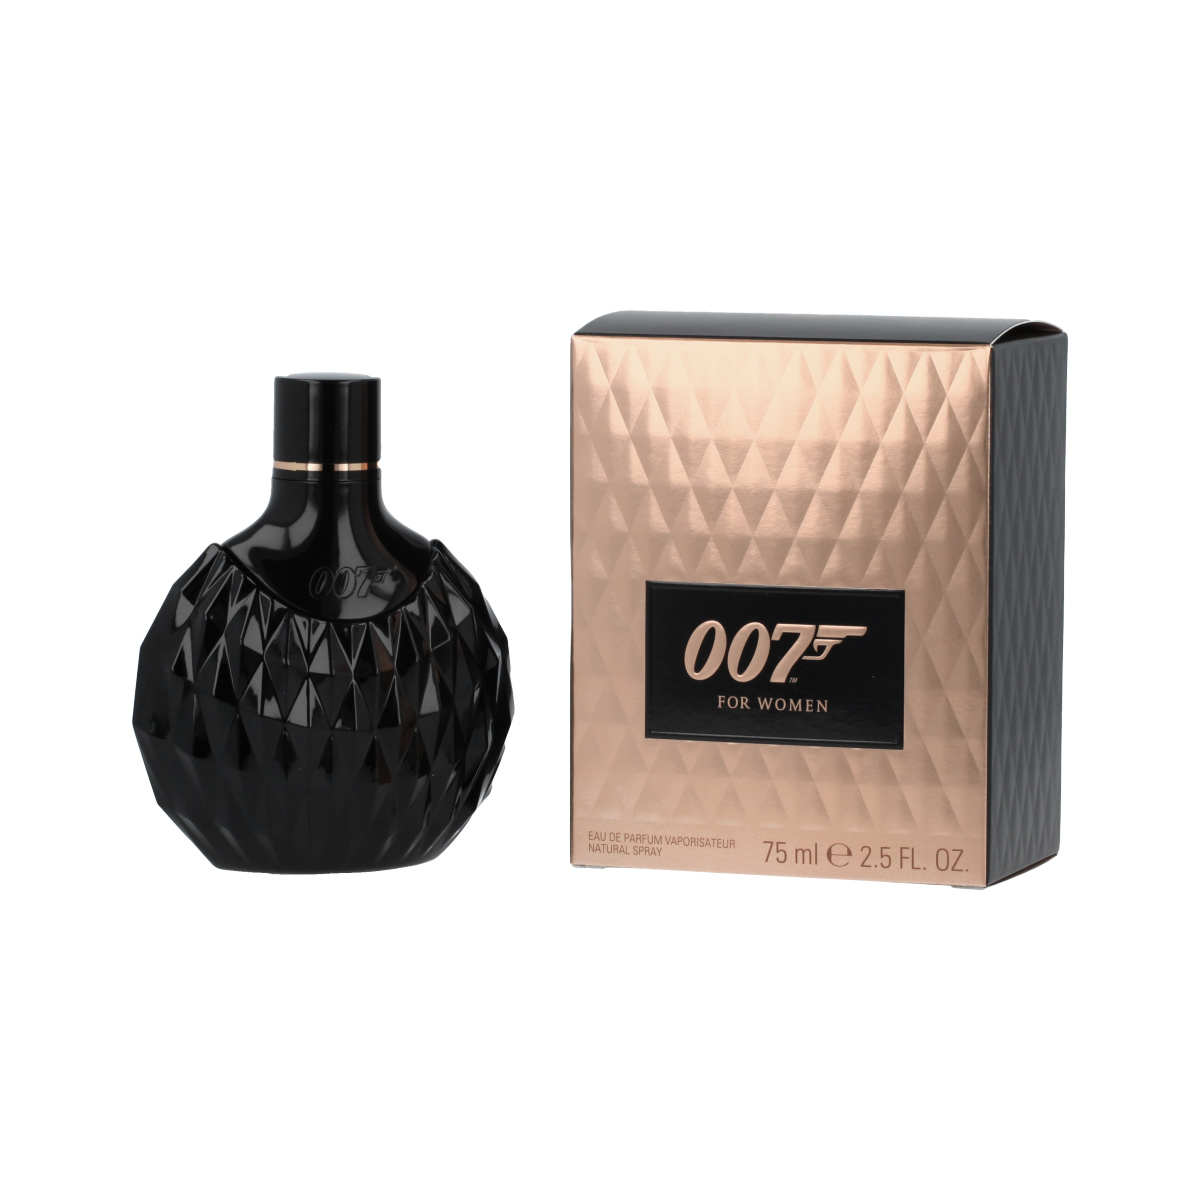 James Bond James Bond 007 for Women Eau De Parfum 75 ml (woman) 78028